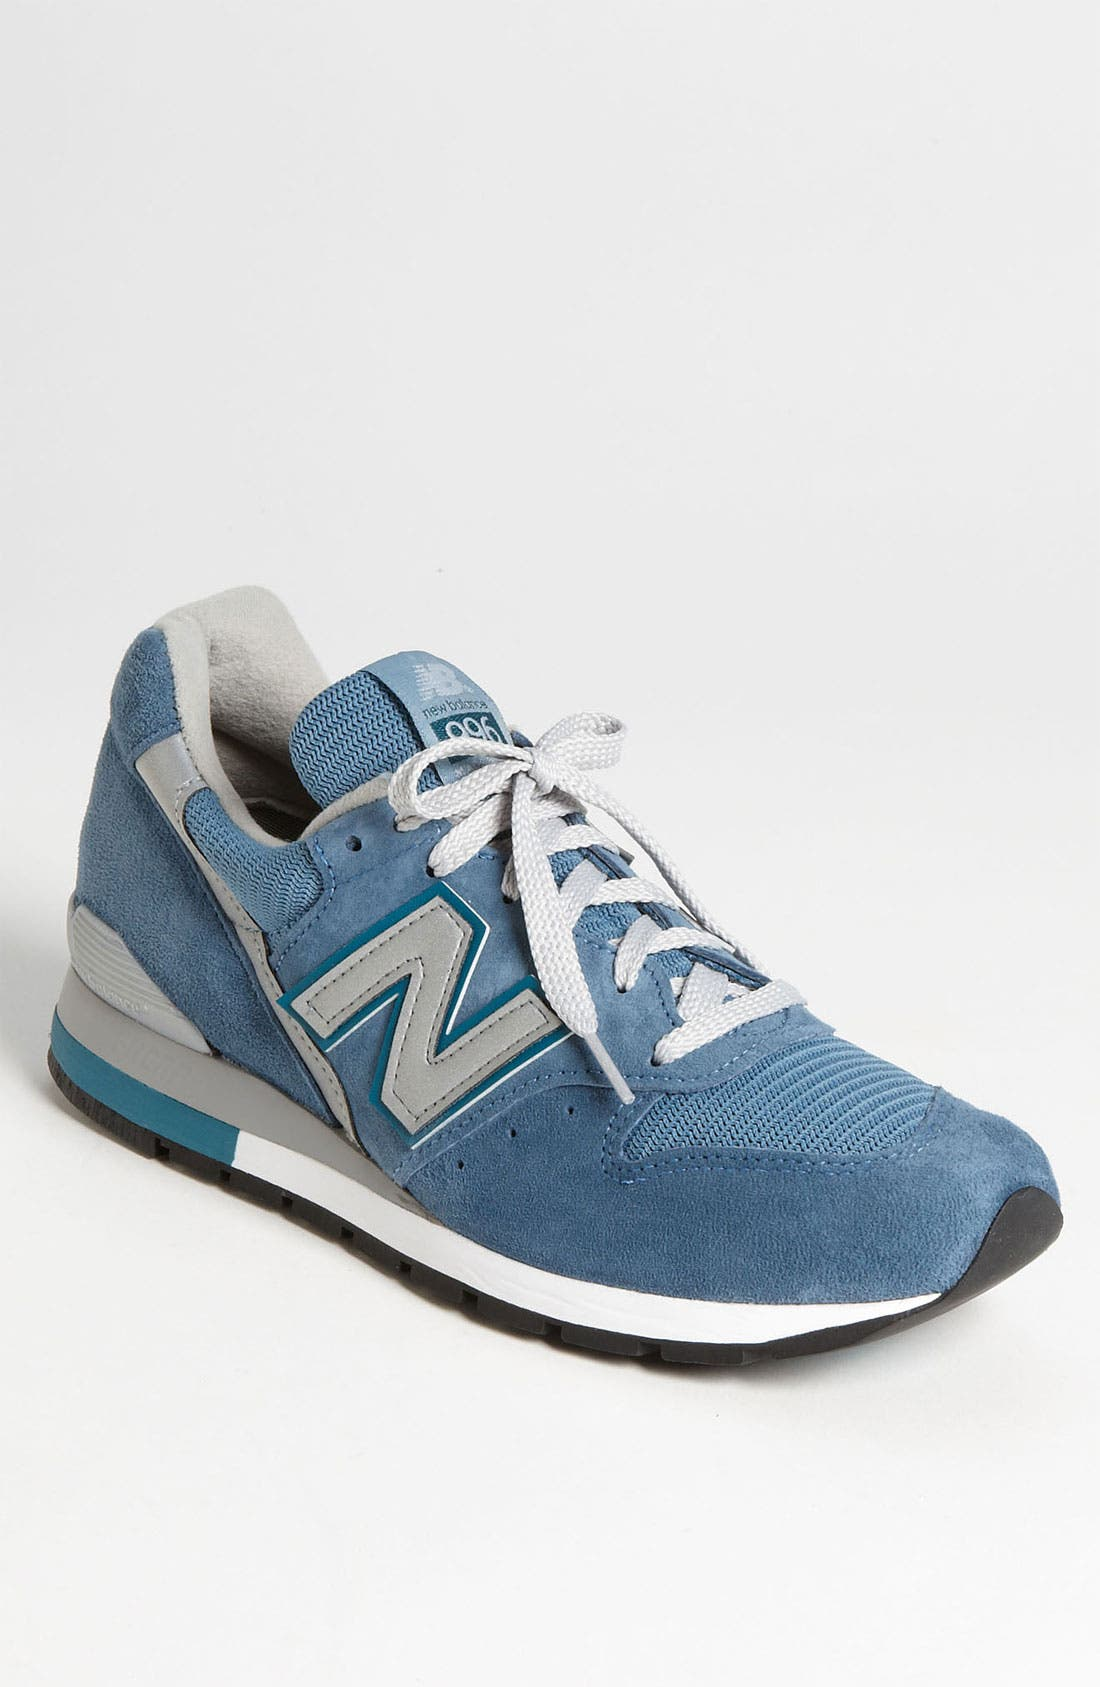 Alternate Image 1 Selected - New Balance '996' Sneaker (Men)